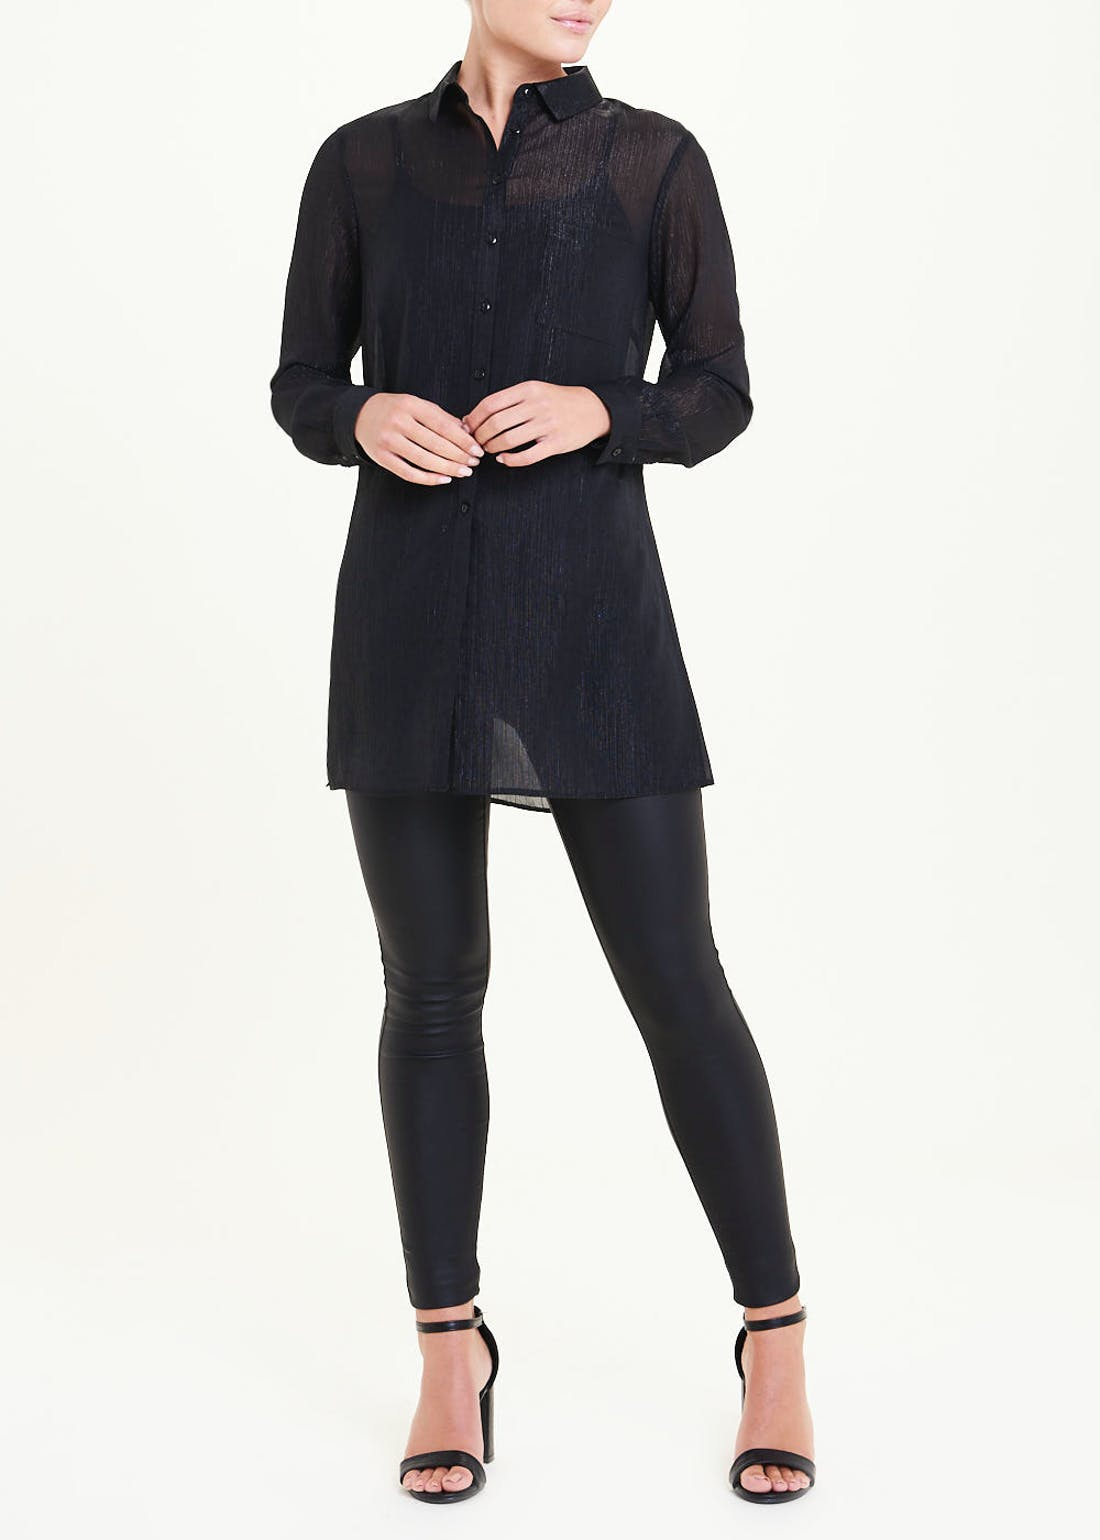 Black Long Sleeve Sparkle Tunic Shirt